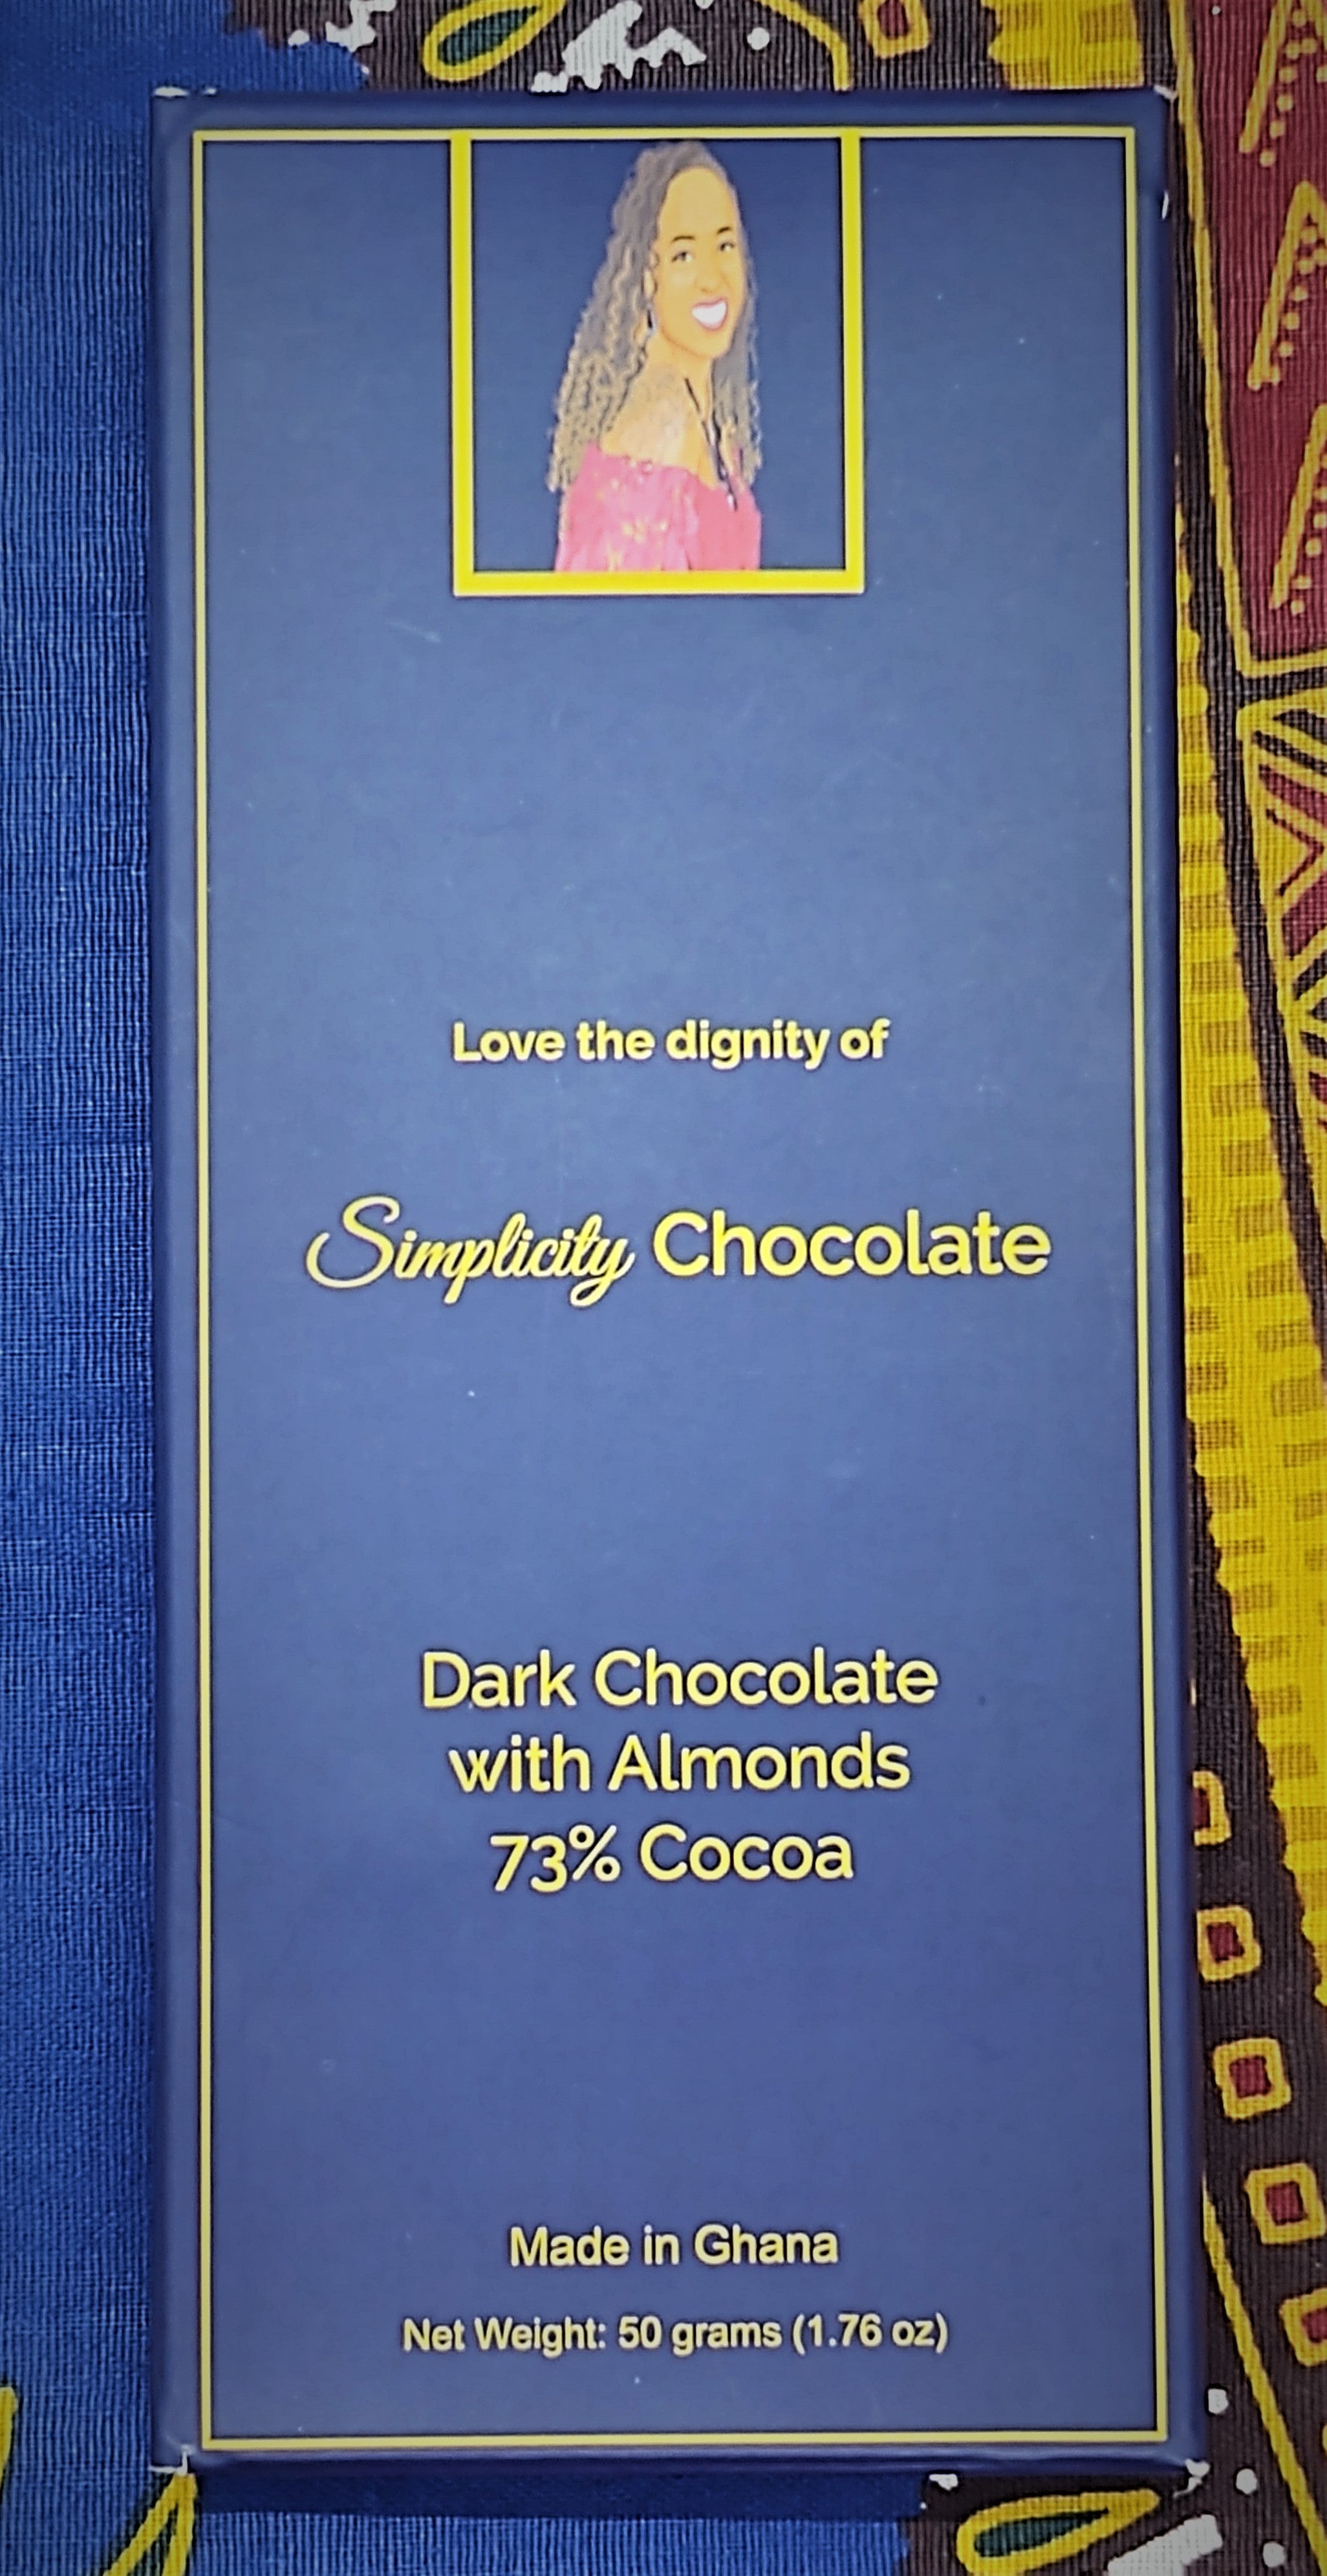 Dark Chocolate with Almonds (73% Cocoa)